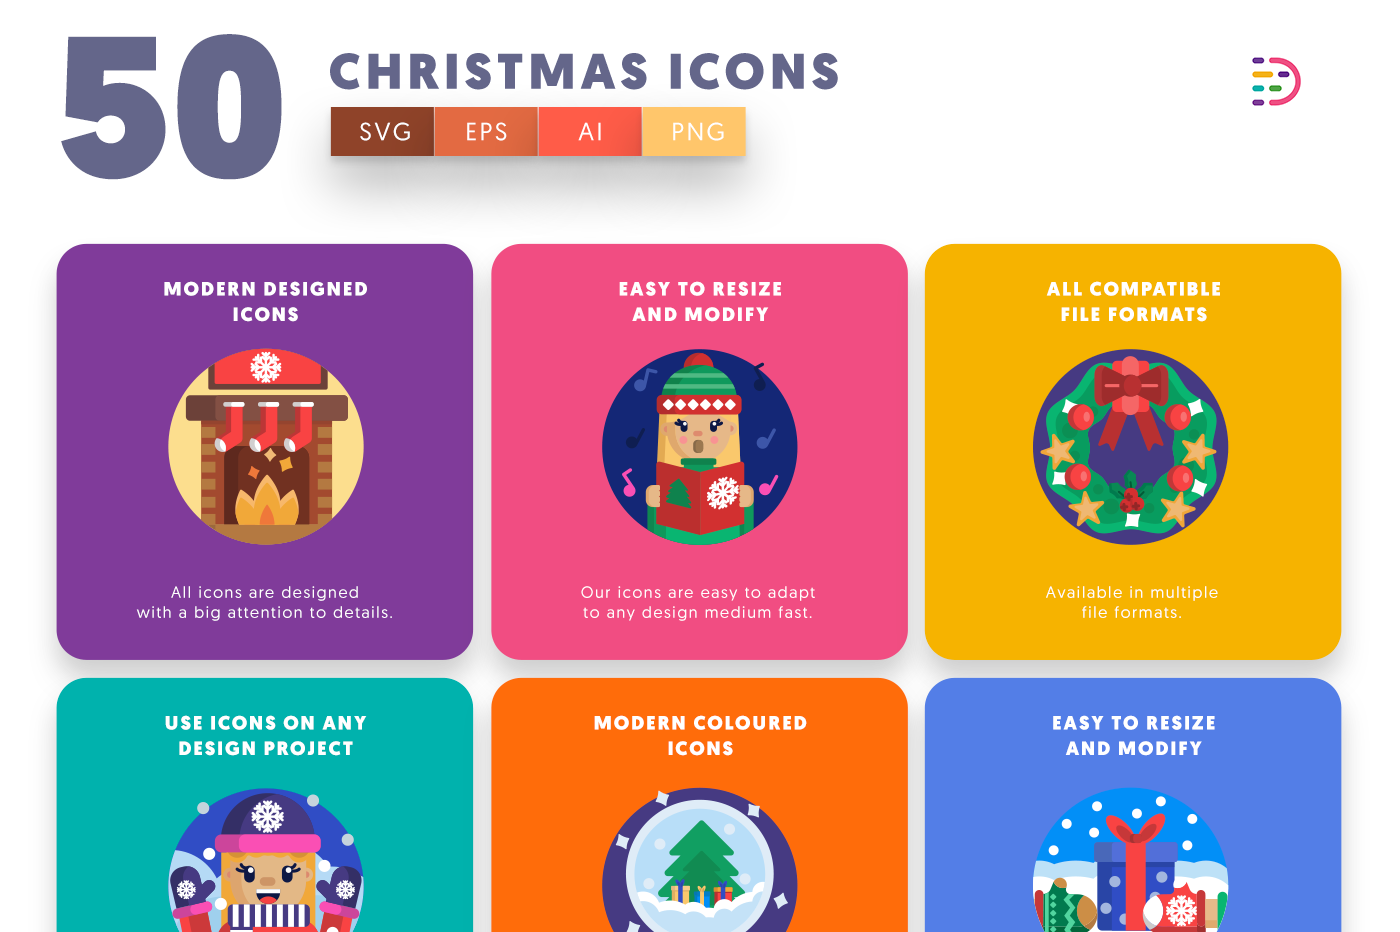 50 Christmas Icons with colored backgrounds